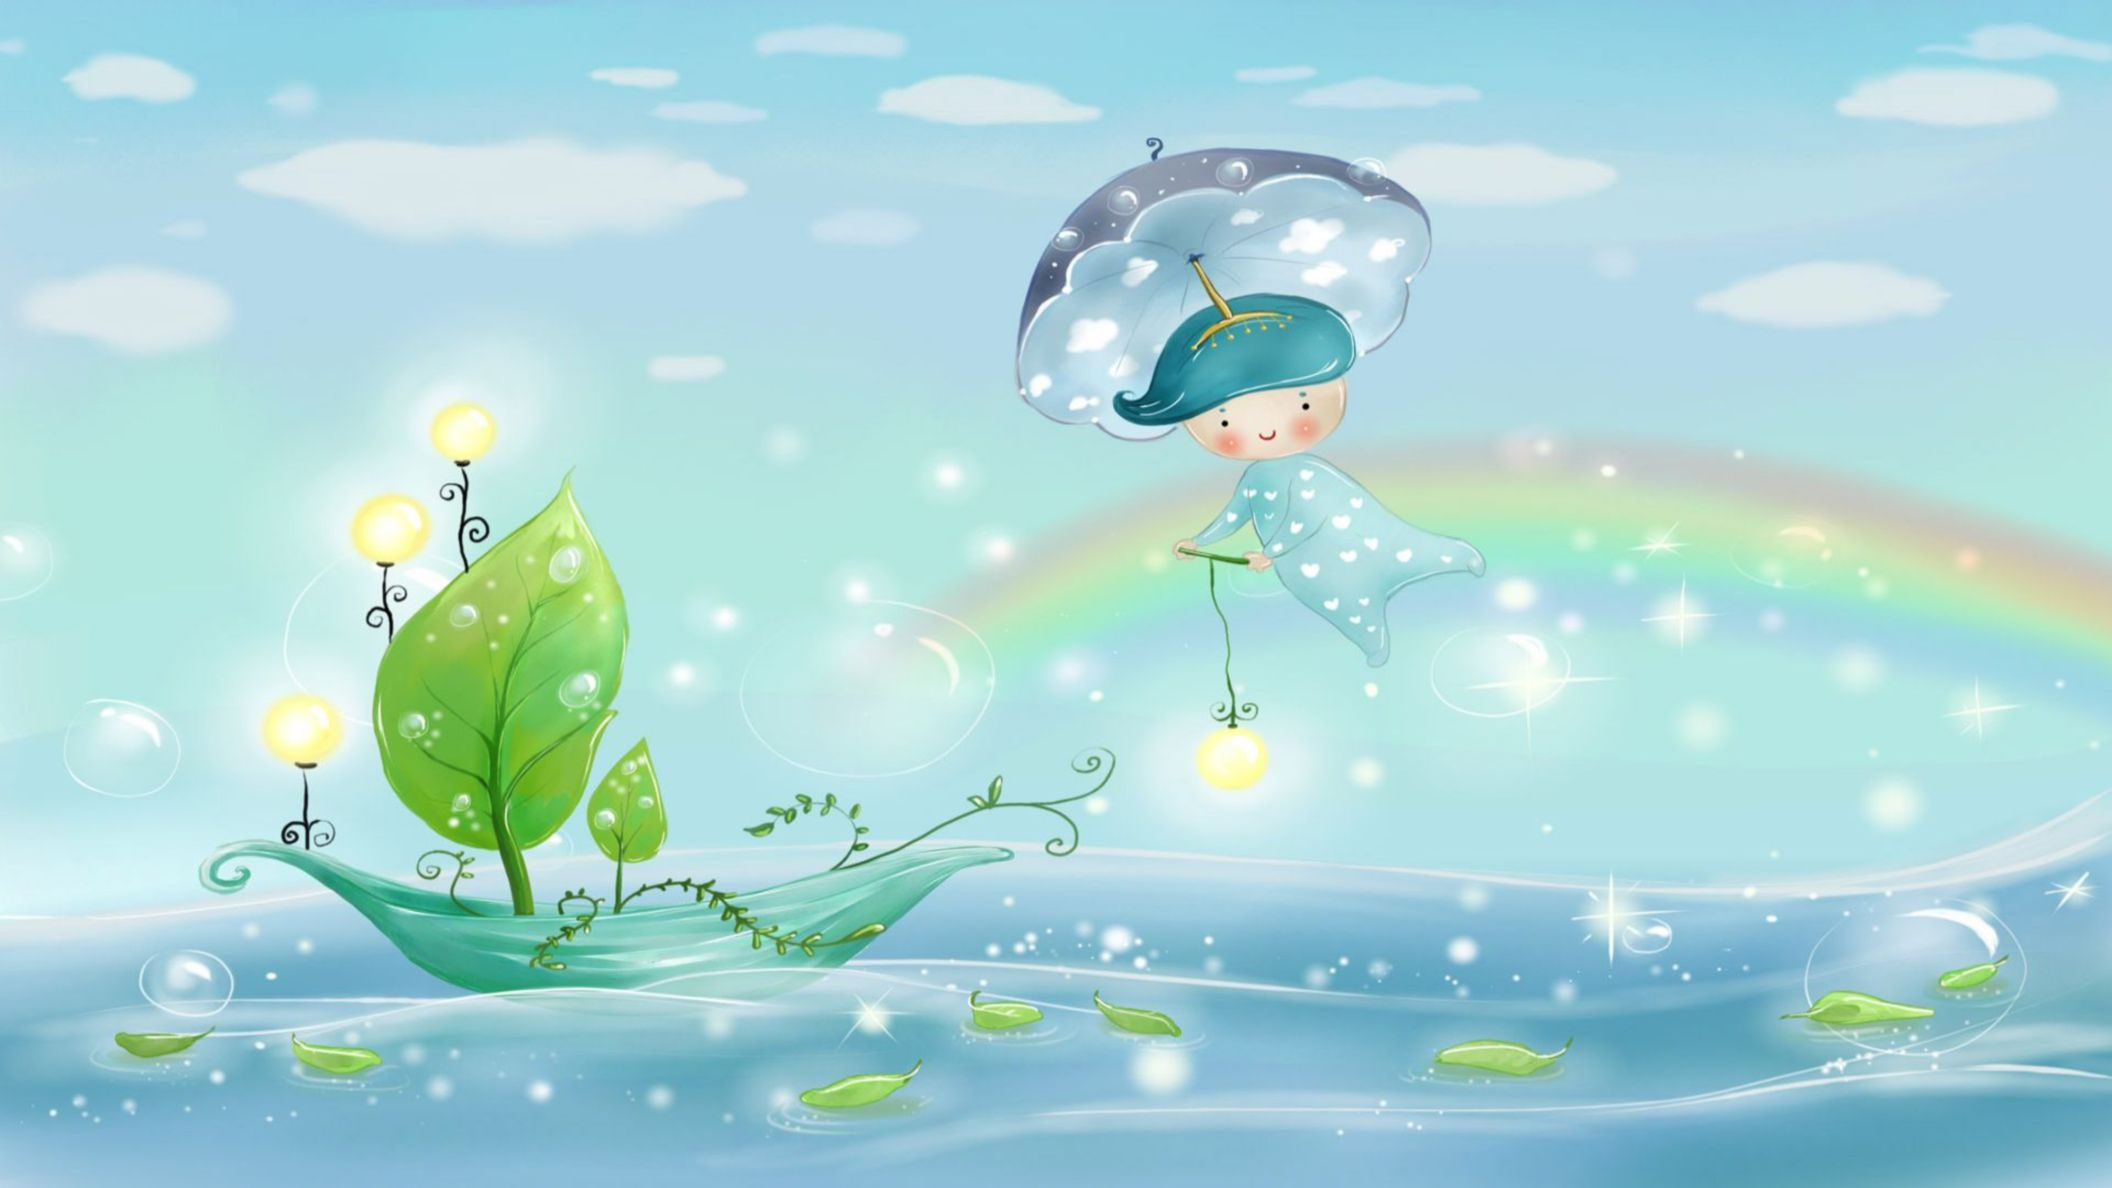 Download free HD Cute Cartoon HD 1920×1080 Wallpaper, image